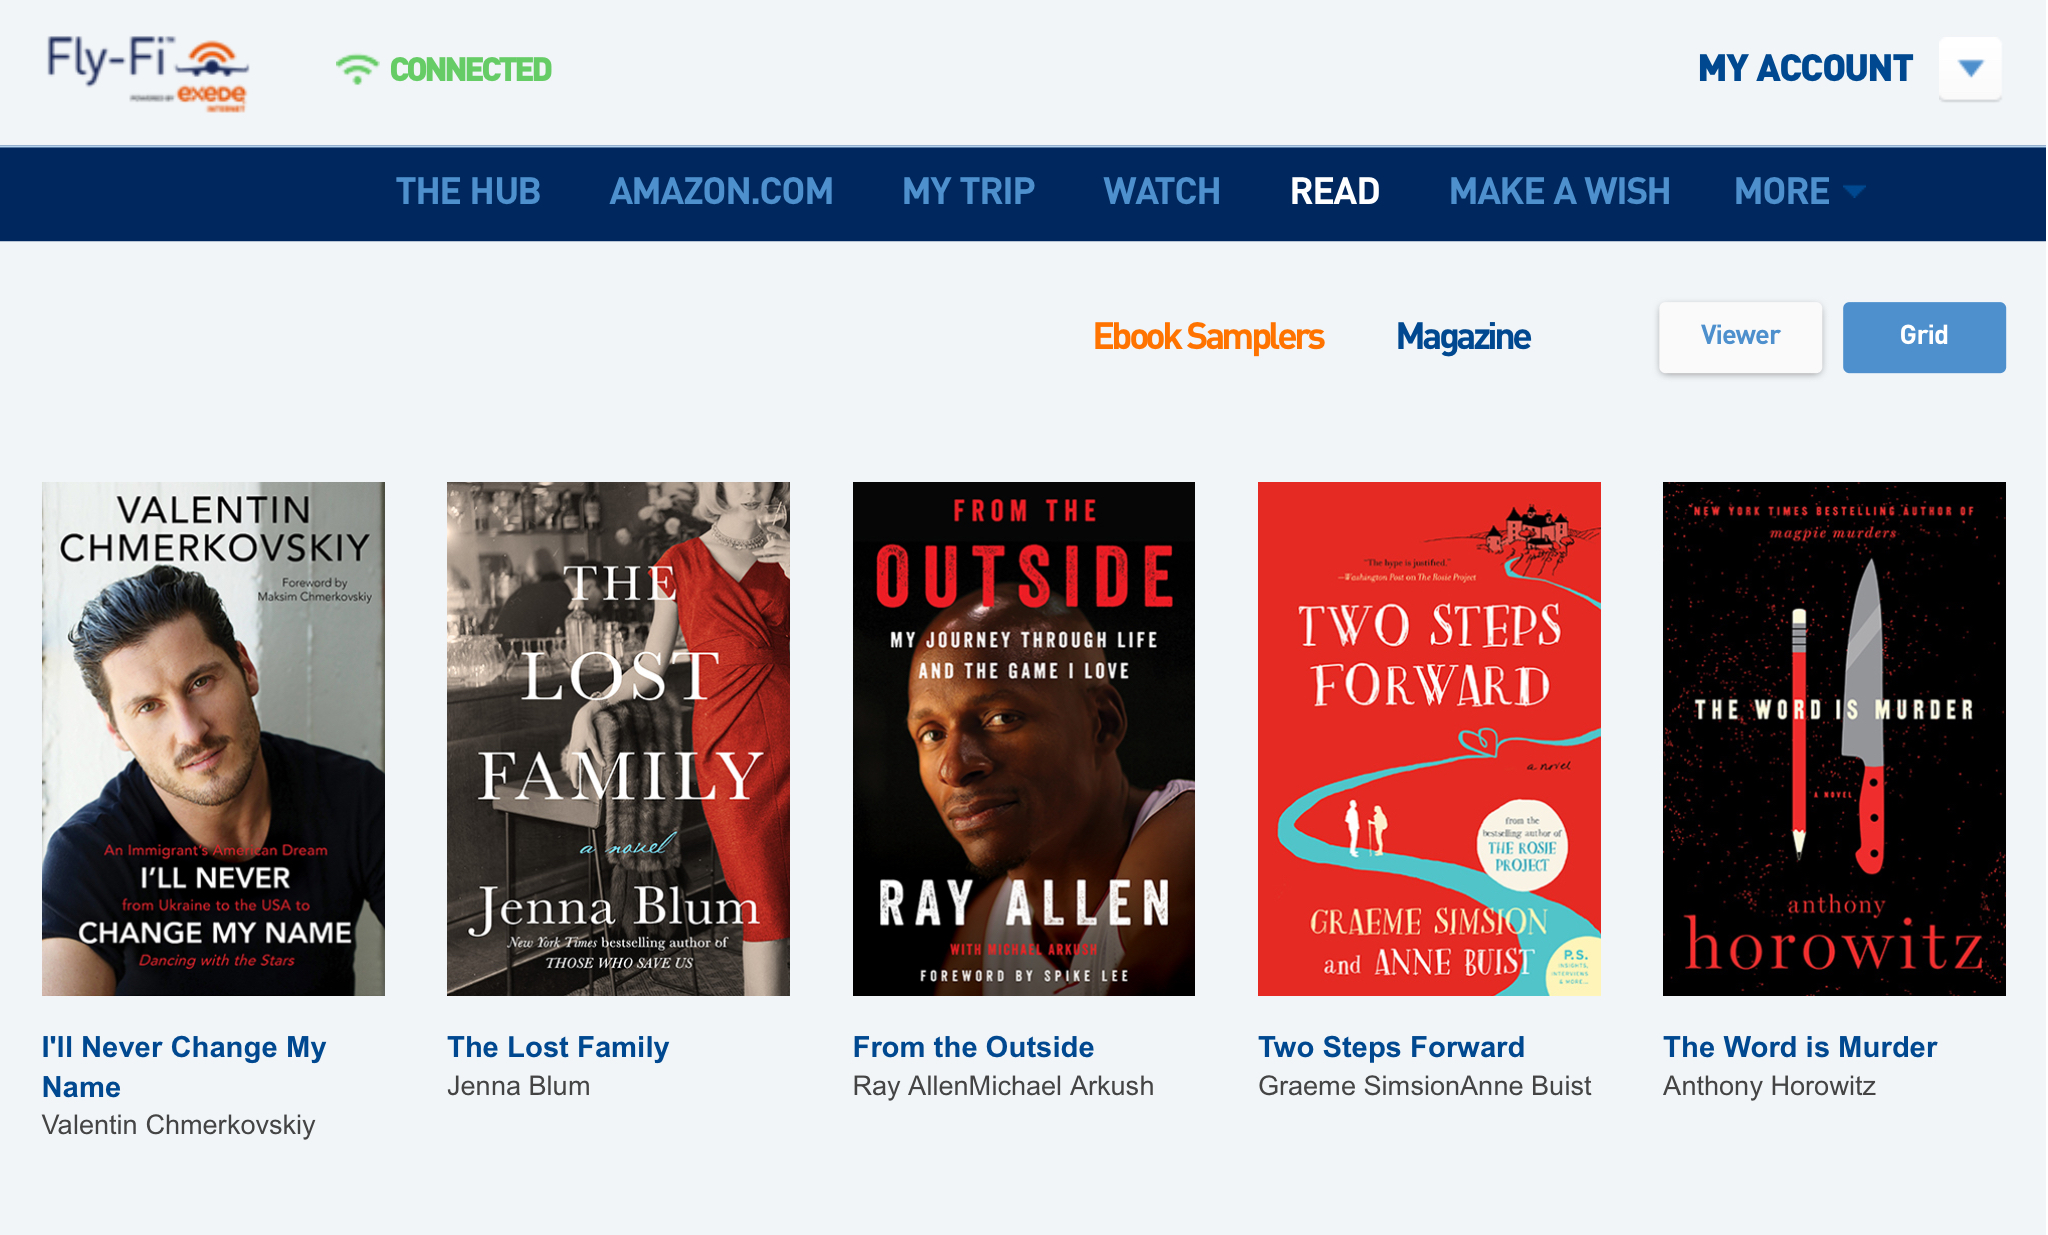 The Lost Family Free Download on JetBlue - If you're flying JetBlue this month, you can access a free download of The Lost Family via their web browser, FlyFi (open it, then click Books). Very friendly skies indeed!